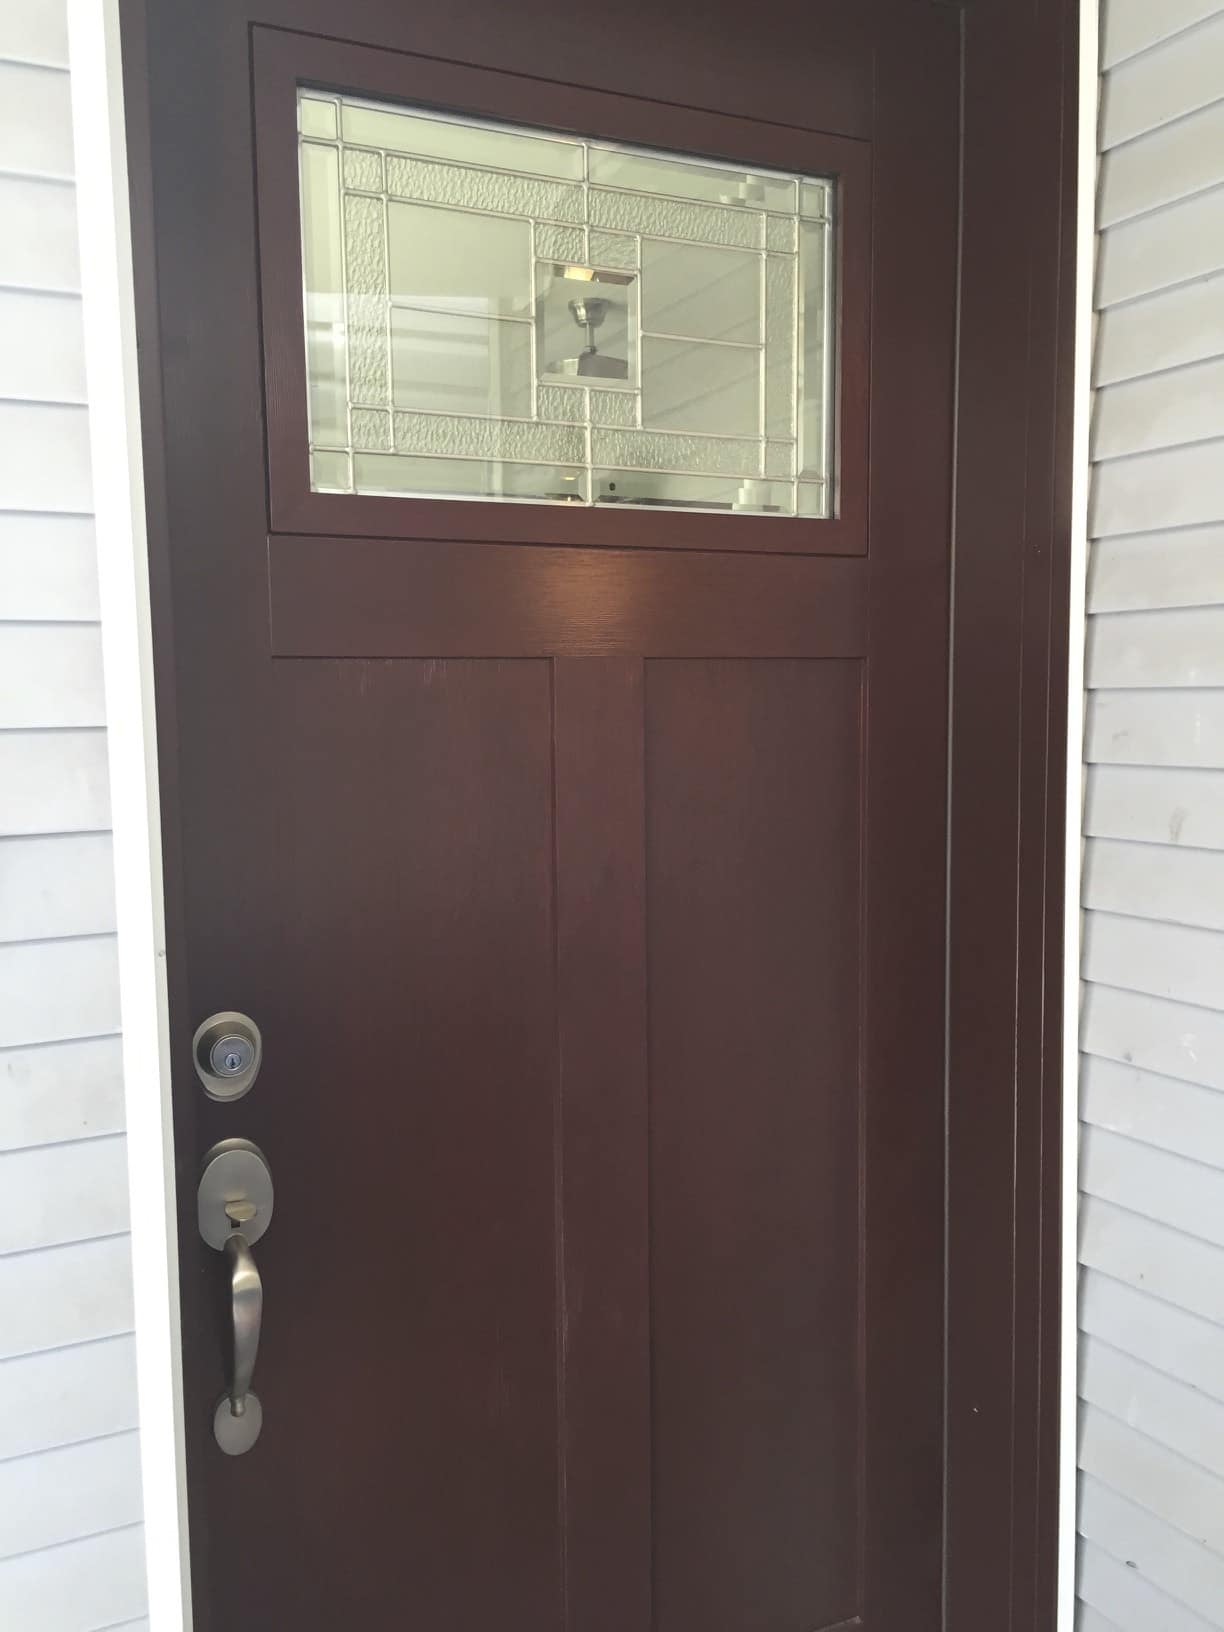 Chicago 39 s best fiberglass entry doors sahara window and dors - Paint or stain fiberglass exterior doors concept ...